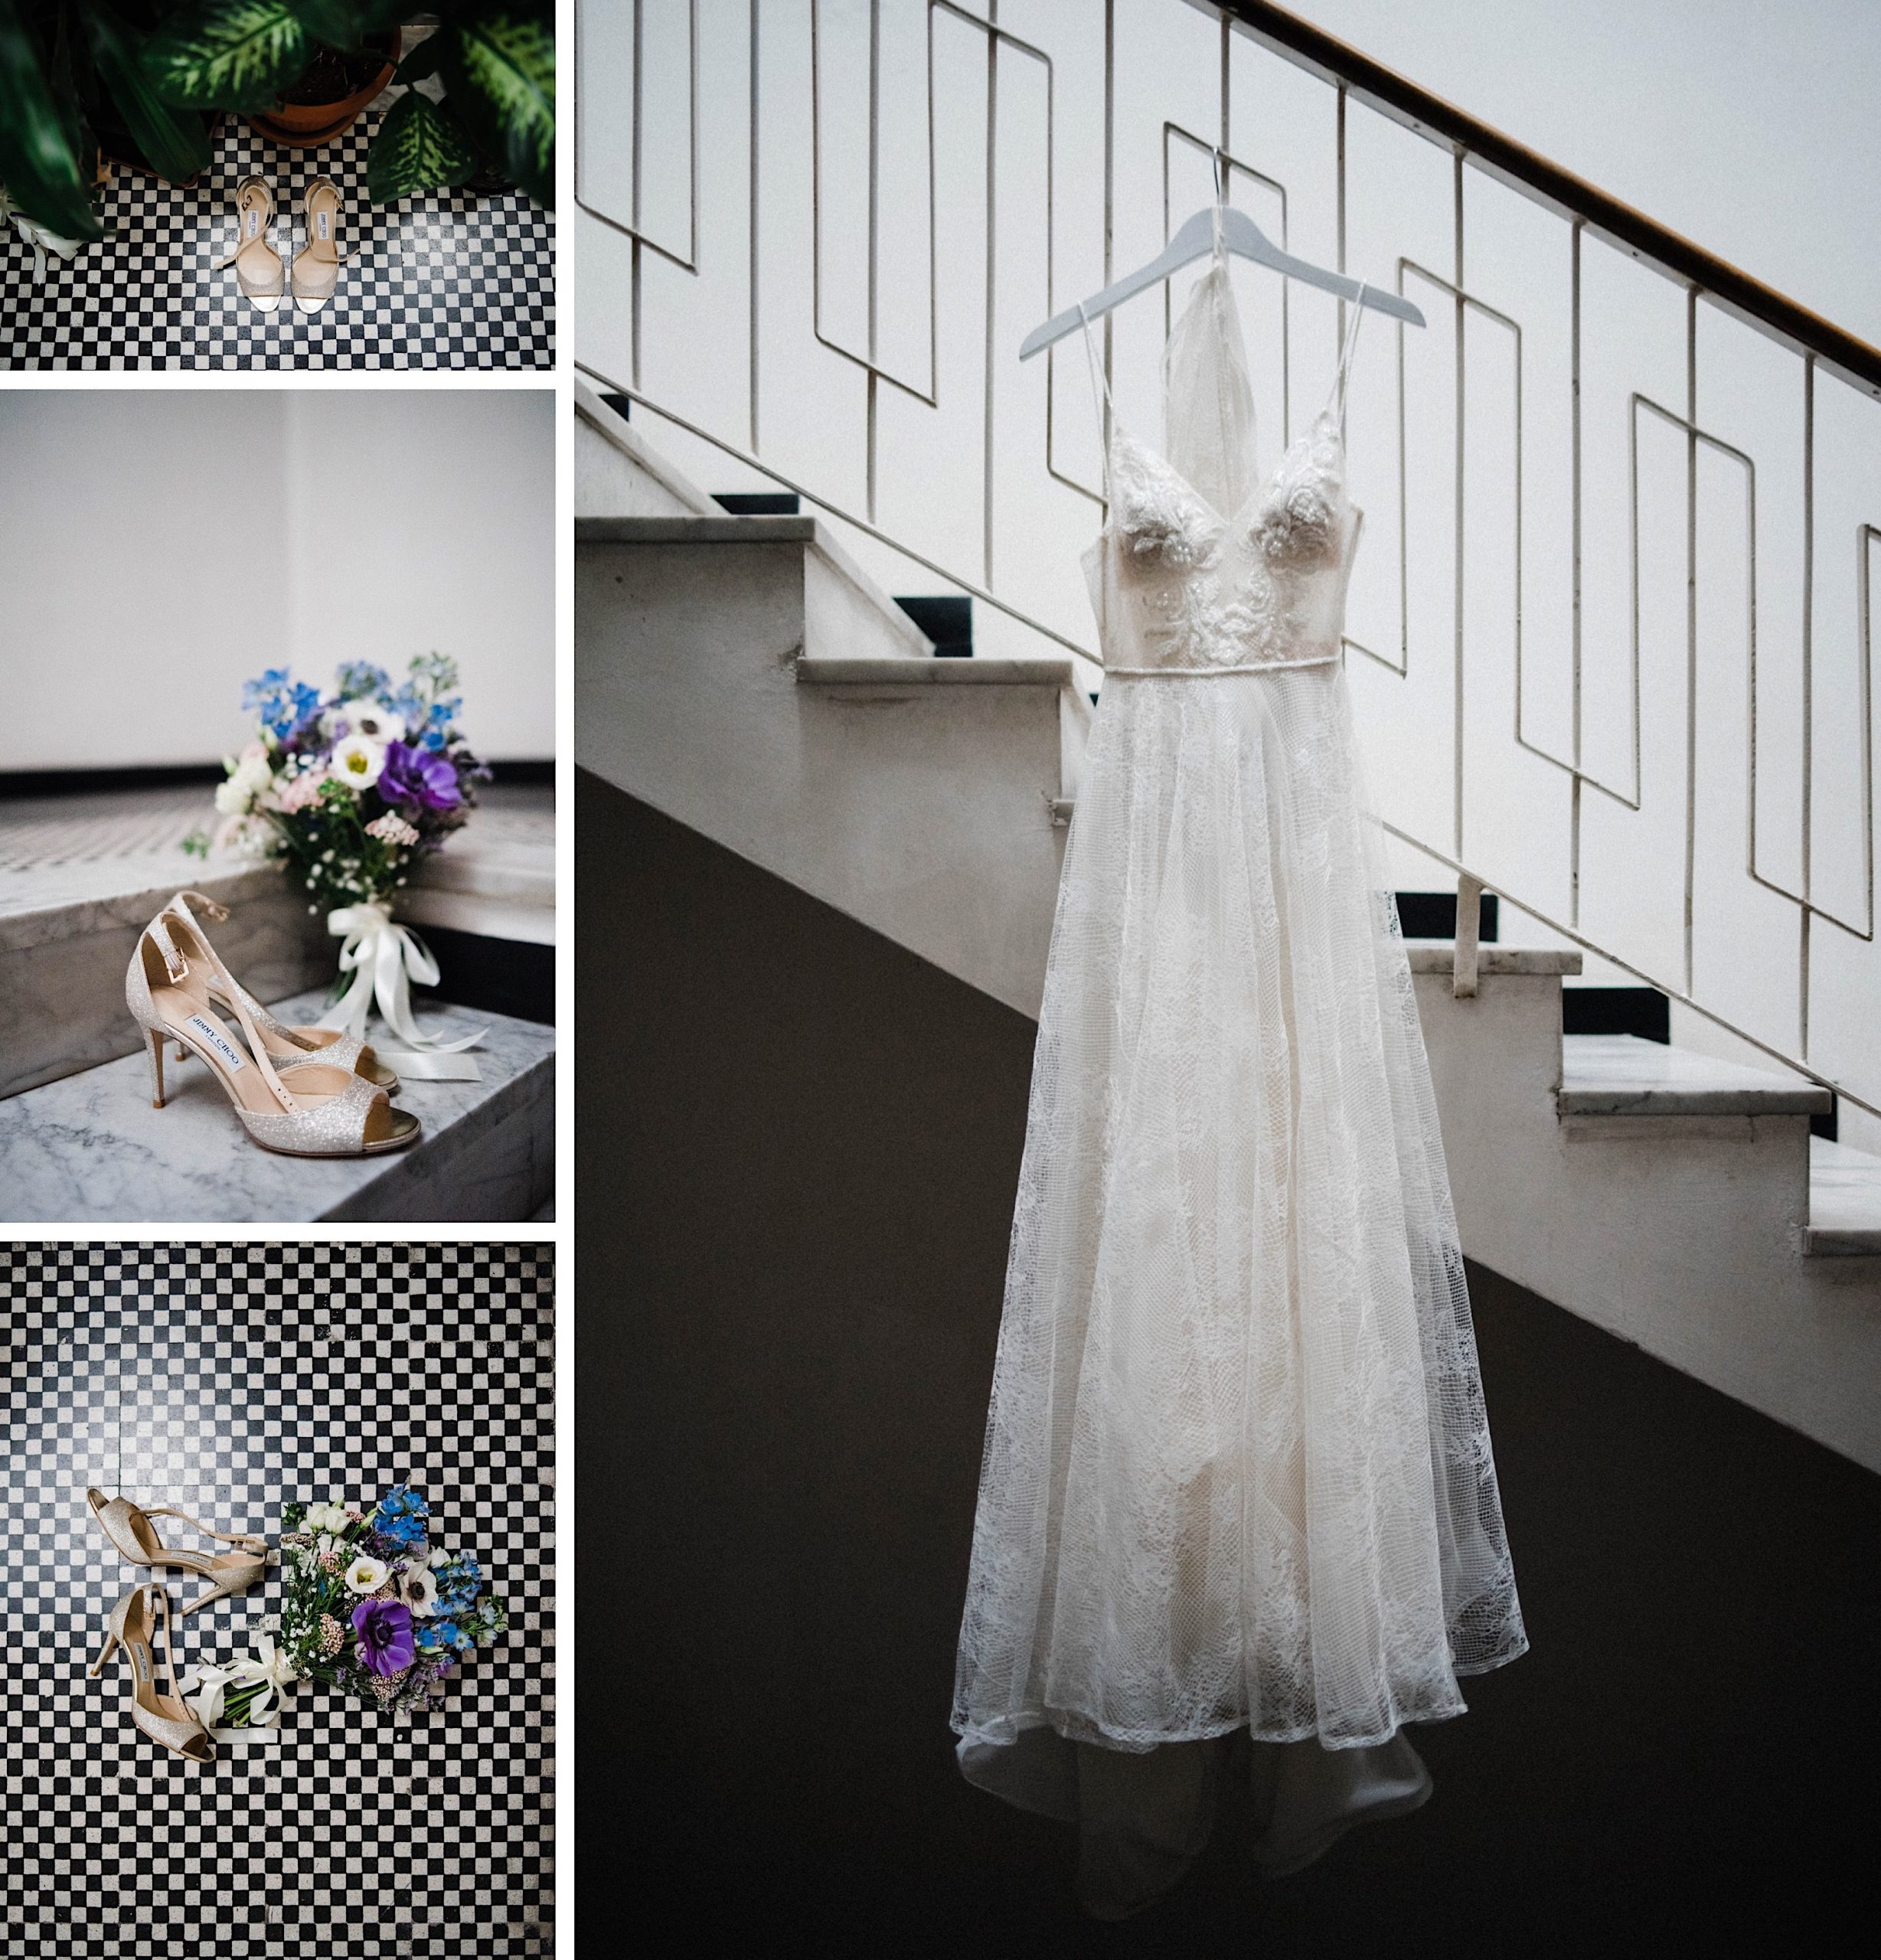 A collage of the Bride's details and dress before her Sestri Levante Wedding, including her Flora Bridal Gown hanging from a stairwell, gold Jimmy Choo shoes and a small bouquet.